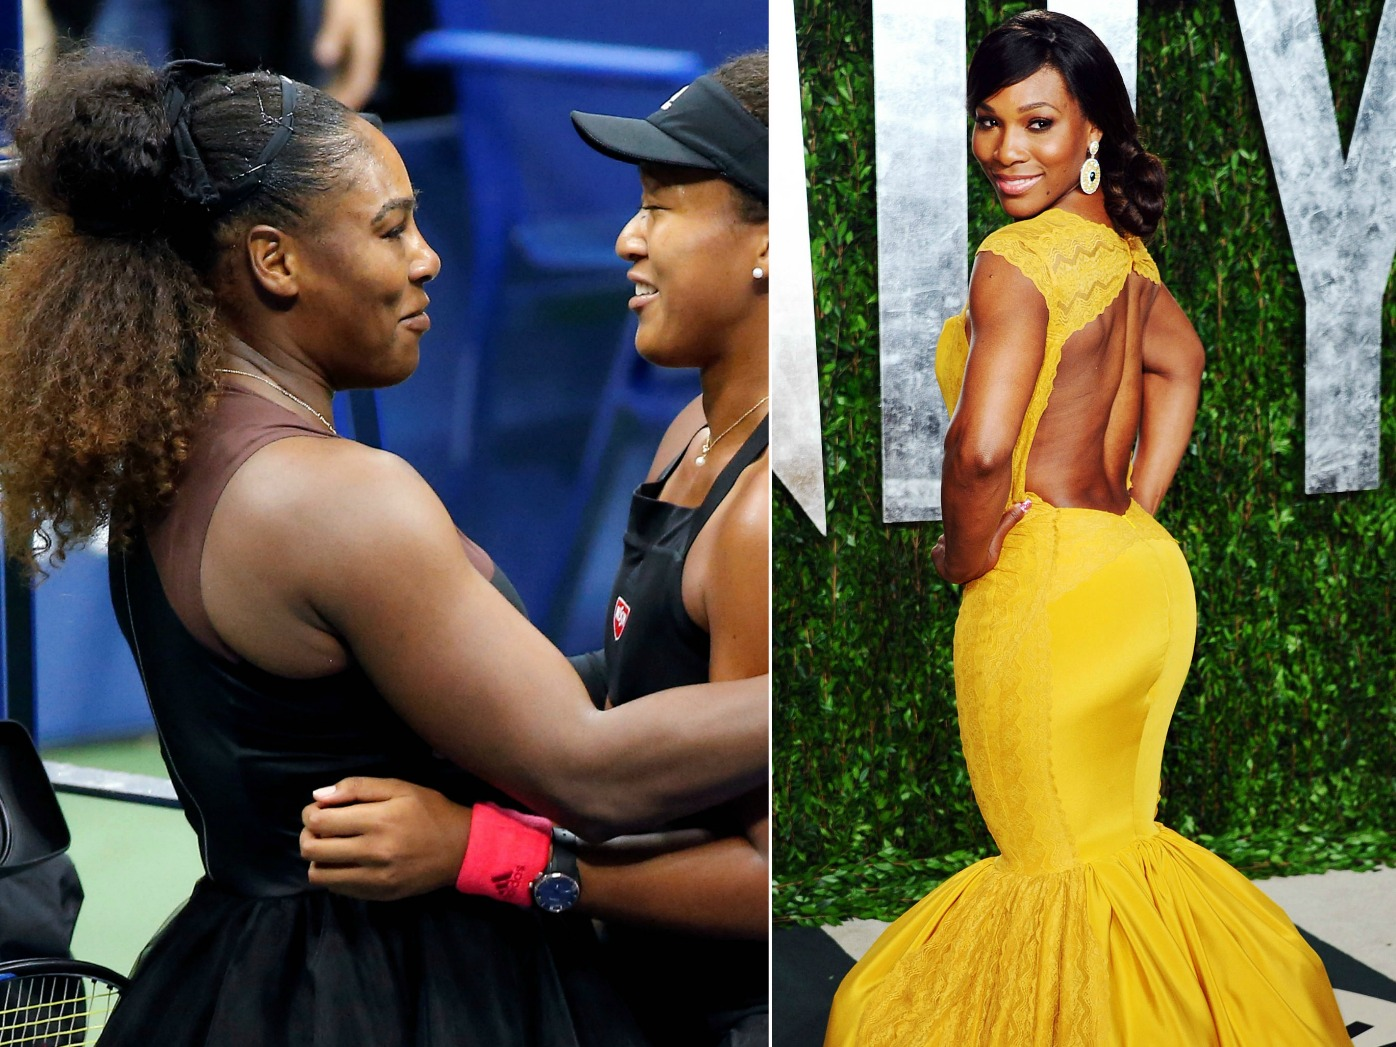 """Global tennis champion, feminist, clothes designer, advocate for fashion diversity, star of two biographical documentaries and a new mum - it's not hard to see why <a href=""""https://style.nine.com.au/serena-williams"""" title=""""Serena Williams"""" draggable=""""false"""">Serena Williams</a> is a powerful inspiration for people from all walks of life.<br /> <br /> While the 36-year-old found herself in rough waters in the recent US Open women's finals, where a controversial on-court spat saw the sportswoman docked an entire game point, Serena has received mass support from fans everywhere.<br /> <br /> Celebrated as a leading feminist who often campaigns for gender equality in a sexist global sport industry, Serena is also one of the most fashion-forward women on and off the court.<br /> <br /> Not afraid to stick it to the man and push traditional boundaries, fans cheered when Serena stepped out <a href=""""https://style.nine.com.au/2018/08/29/08/47/style-fashion-us-open-tutu-serena-williams"""" title=""""wearing a tutufor a number of her matches in the US Open."""" draggable=""""false"""">wearing a tutu for a number of her matches in the US Open.</a> The move was seen by many as a figurative flip-the-bird to tennis officials who previously shredded the court queen for <a href=""""https://honey.nine.com.au/2018/05/30/12/31/serena-williams-catsuit"""" title=""""wearing a catsuit duringthe French Open."""" draggable=""""false"""">wearing a catsuit duringthe French Open.</a><br /> <br /> The athlete, who regularly rubs shoulders with Hollywood A-listers, also <a href=""""https://style.nine.com.au/2018/05/31/14/14/serena-williams-fashion-line-tennis"""" title=""""dropped her ownclothing line this year """" draggable=""""false"""">dropped her own clothing line this year </a>- but not after over a decade of hard work and rejection from a rigid fashion industry.<br /> <br /> """"After 15 years of false starts, and people in fashion telling me 'no,' it only only drove me to work harder. As a result, I discovered what it meant to invest in myse"""